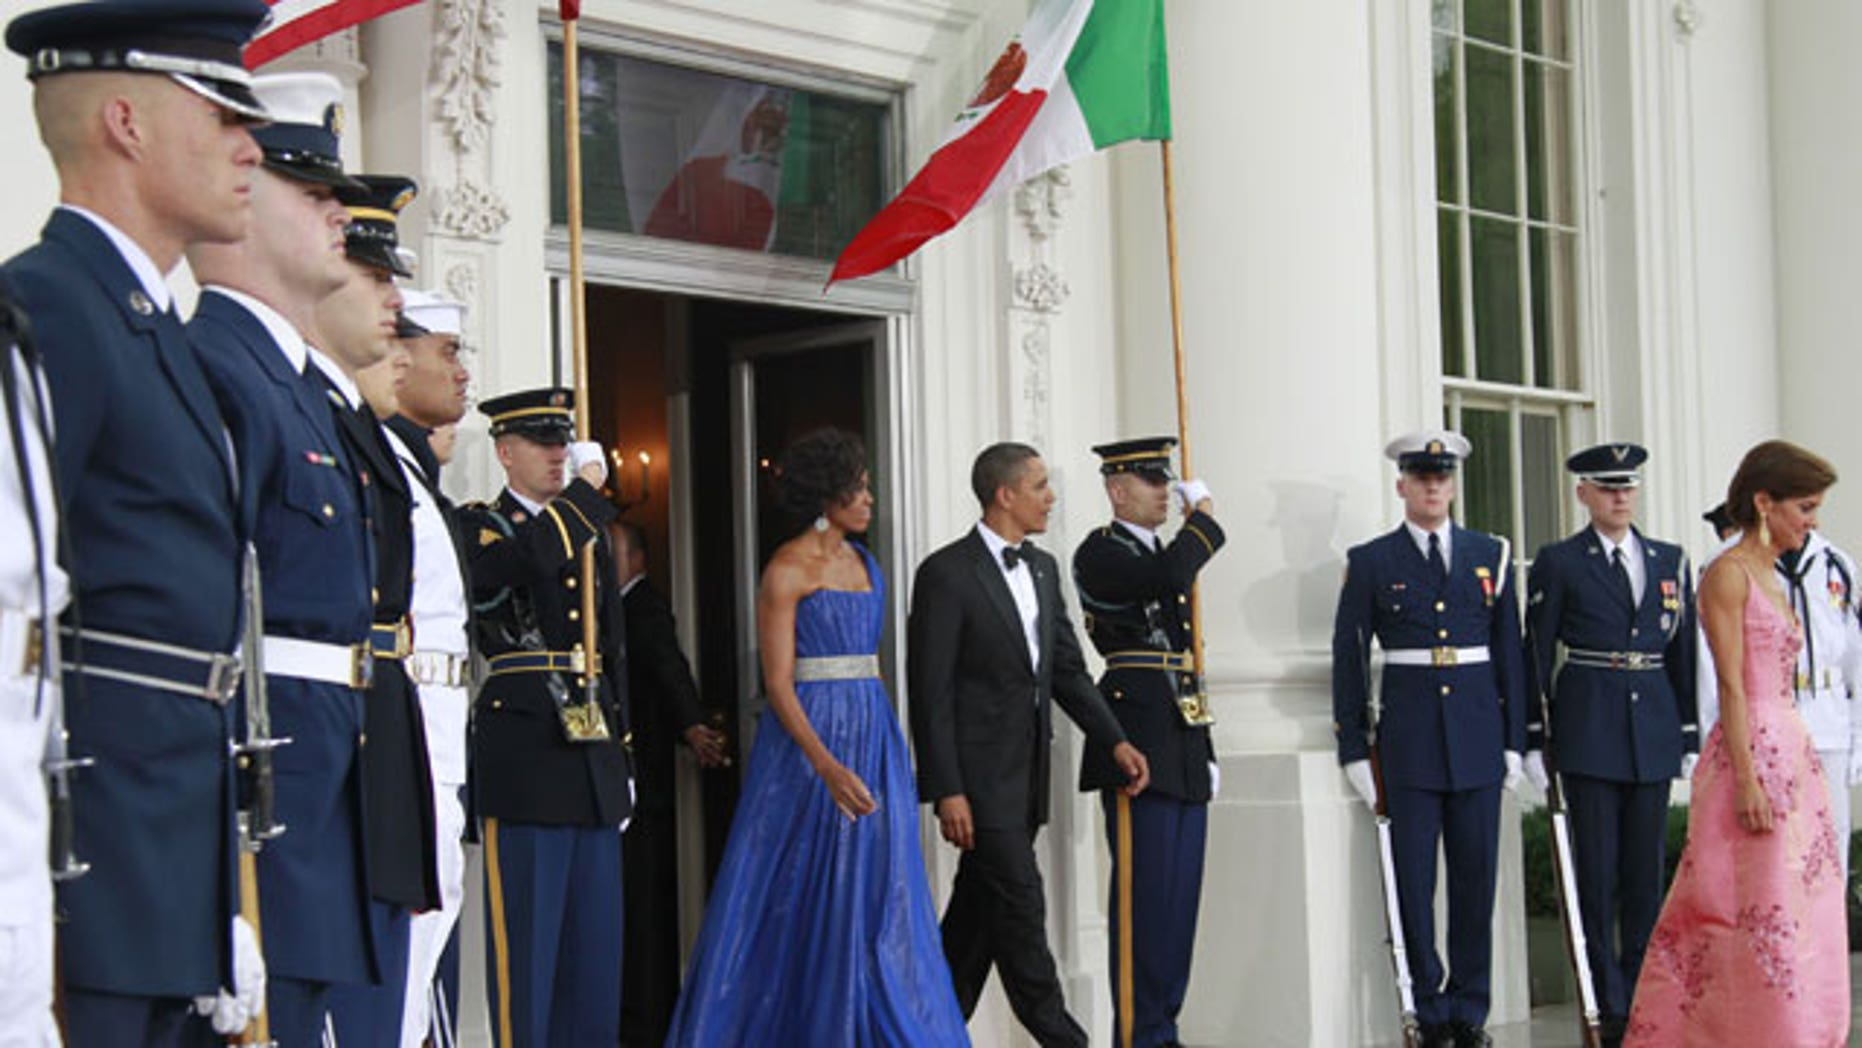 May 19: President Obama and first lady Michelle Obama walk out on the North Portico of the White House to welcome Mexican President Felipe Calderon and Mexico's first lady Margarita Zavala for the State Dinner at the White House in Washington.